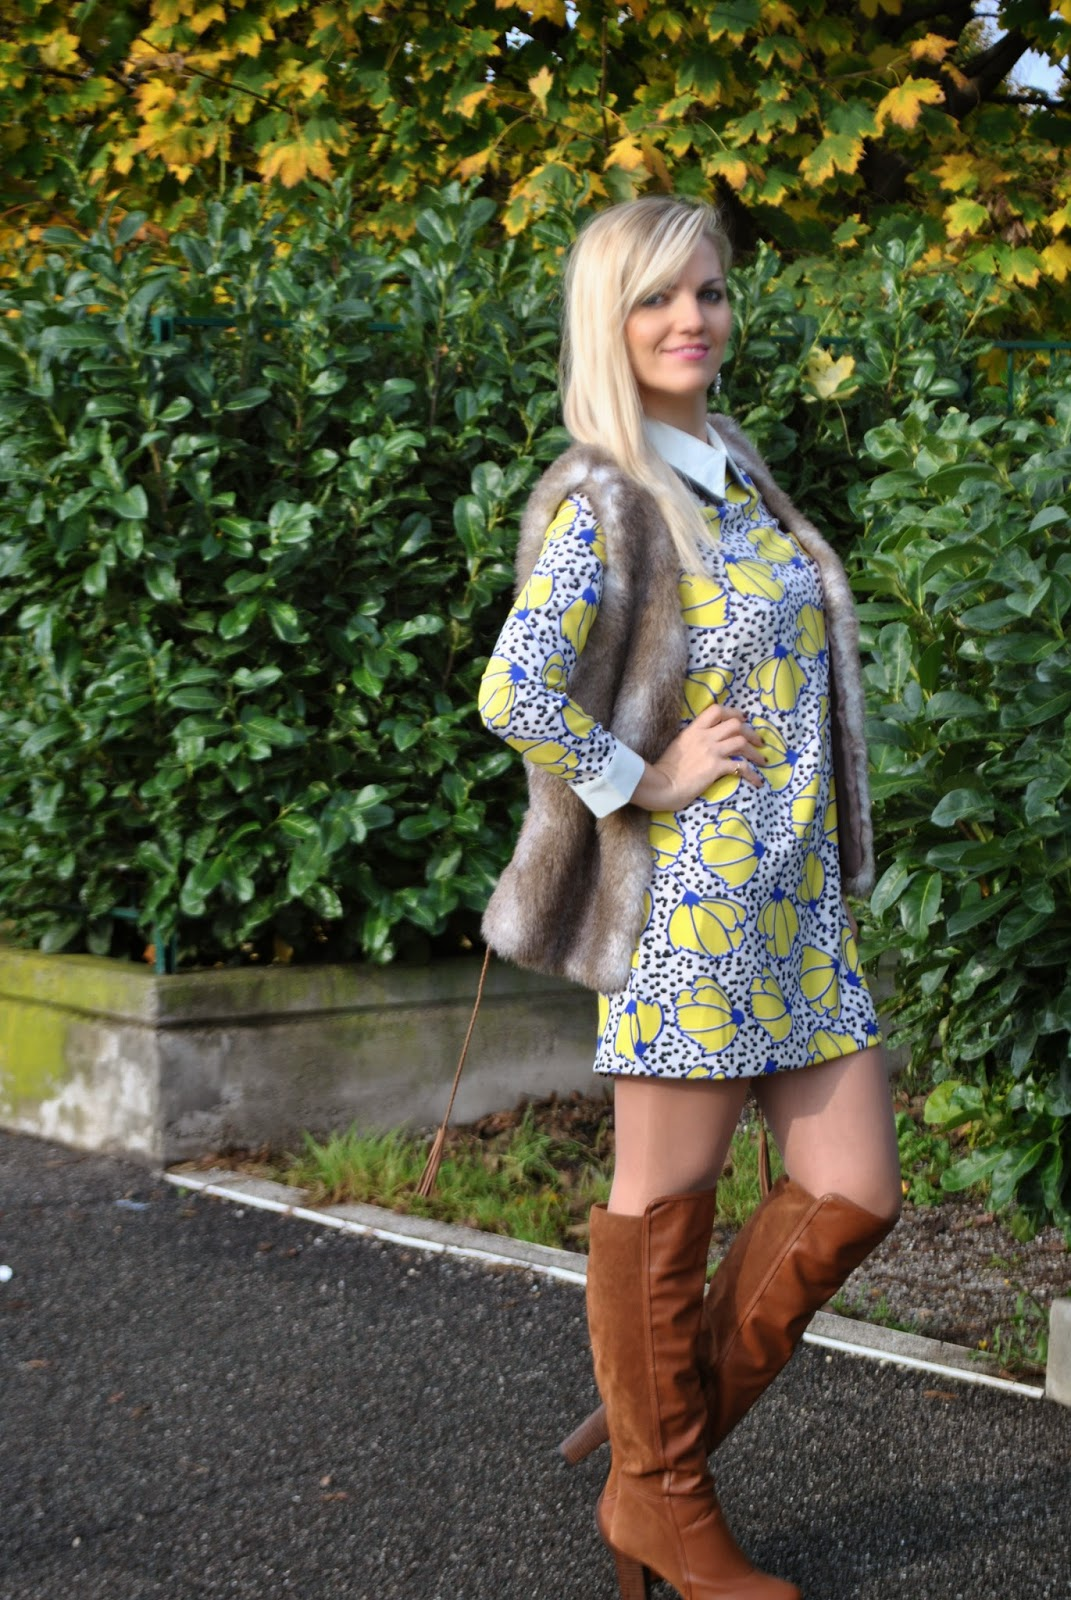 outfit abito persunmall anni 60 outfit abito a sacco outfit abito stampa a fiori outfit abito con doppio colletto e polisini outfit gilet di pelliccia outfit stivali marroni abbinamenti stivali marroni abbinamenti gilet di pelliccia how to wear faux fur vest sixties dress floral dress outfit autunnali outfit novembre 2014 autumnal outfits fashion blogger italiane fashion blog italiani colorblock by felym mariafelicia magno mariafelicia magno fashion blogger orecchini majique majique london earrings ffaux fur vest street style blonde girls fashion blogger bionde ragazze bionde pimkie